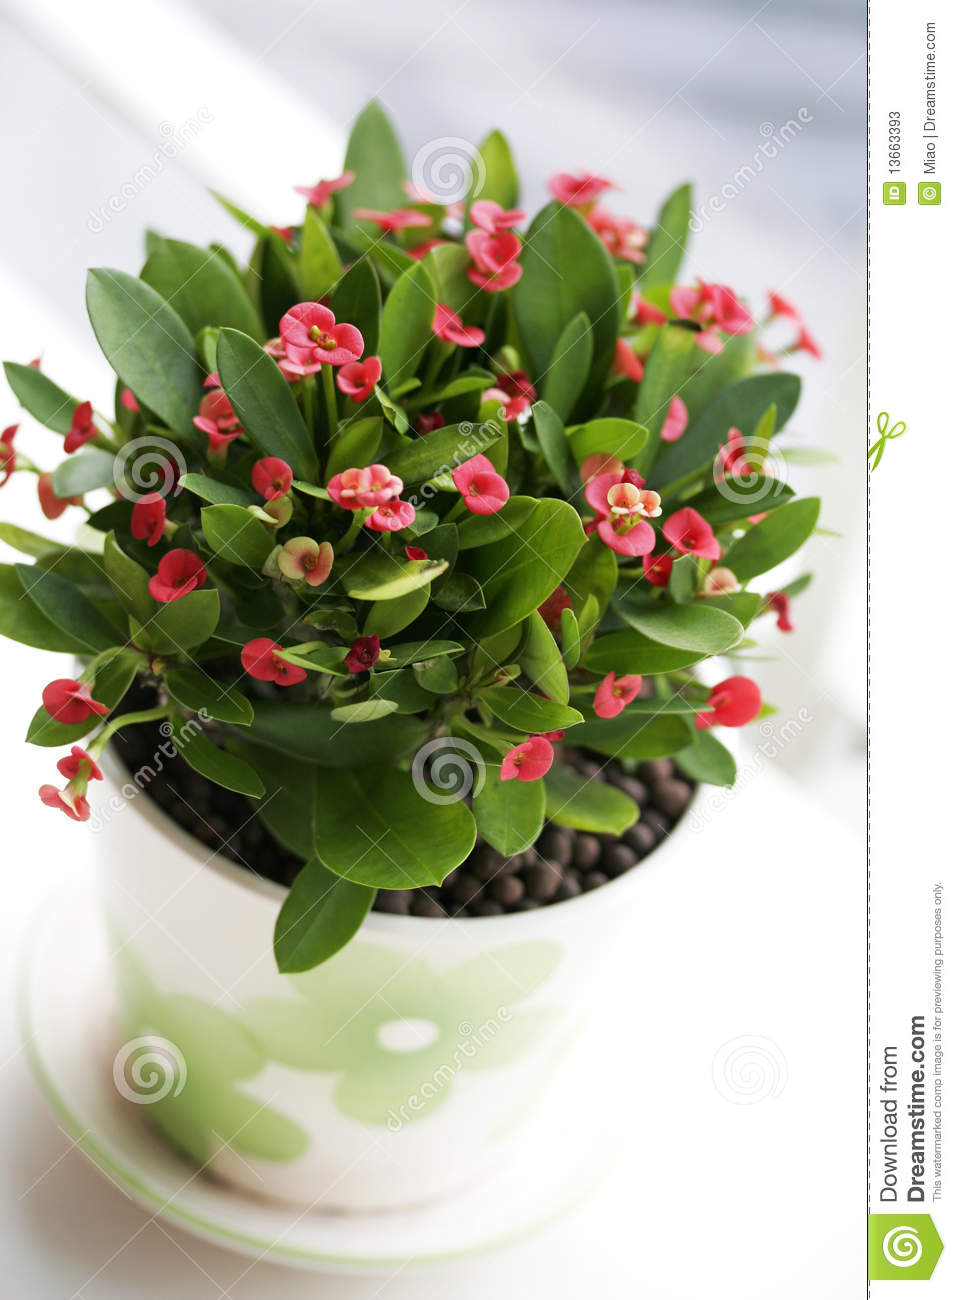 Plante en pot verte photos stock image 13663393 for Plante hivernale en pot